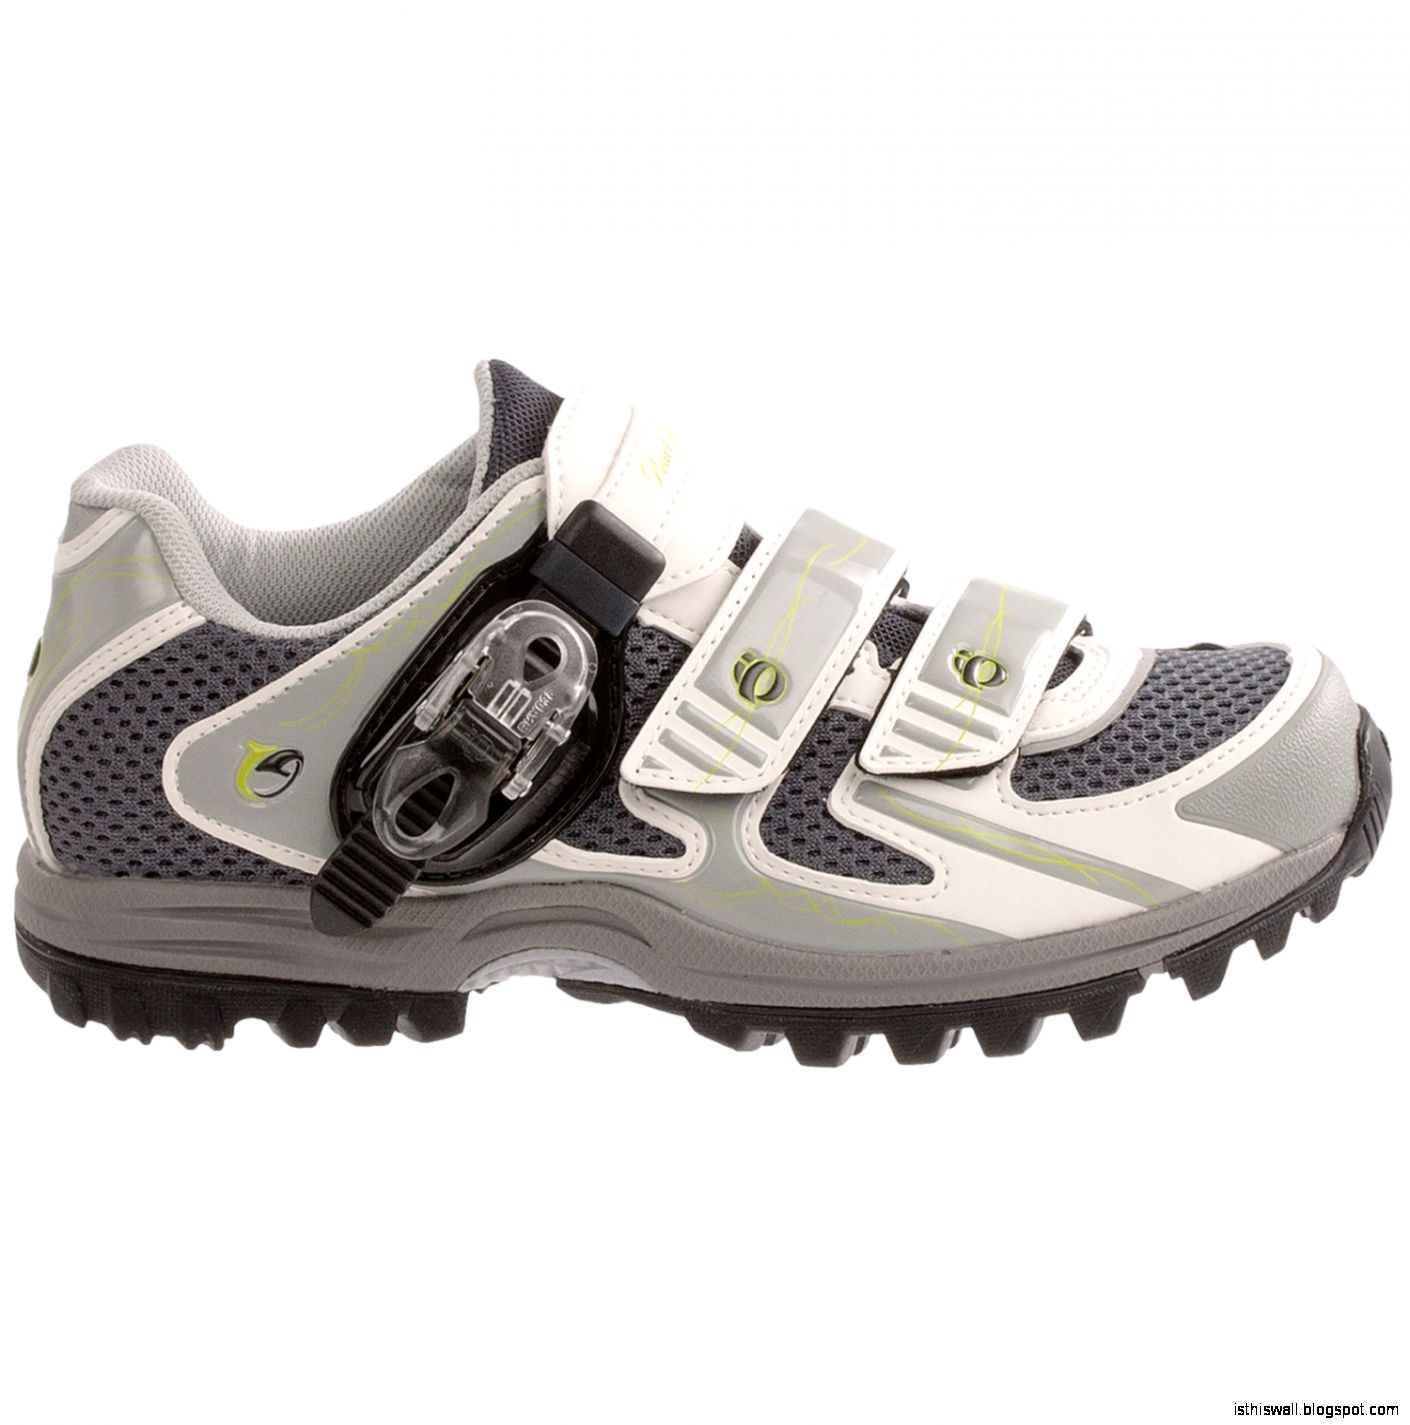 about Pearl Izumi X Alp Enduro III Mountain Bike Shoes For Women